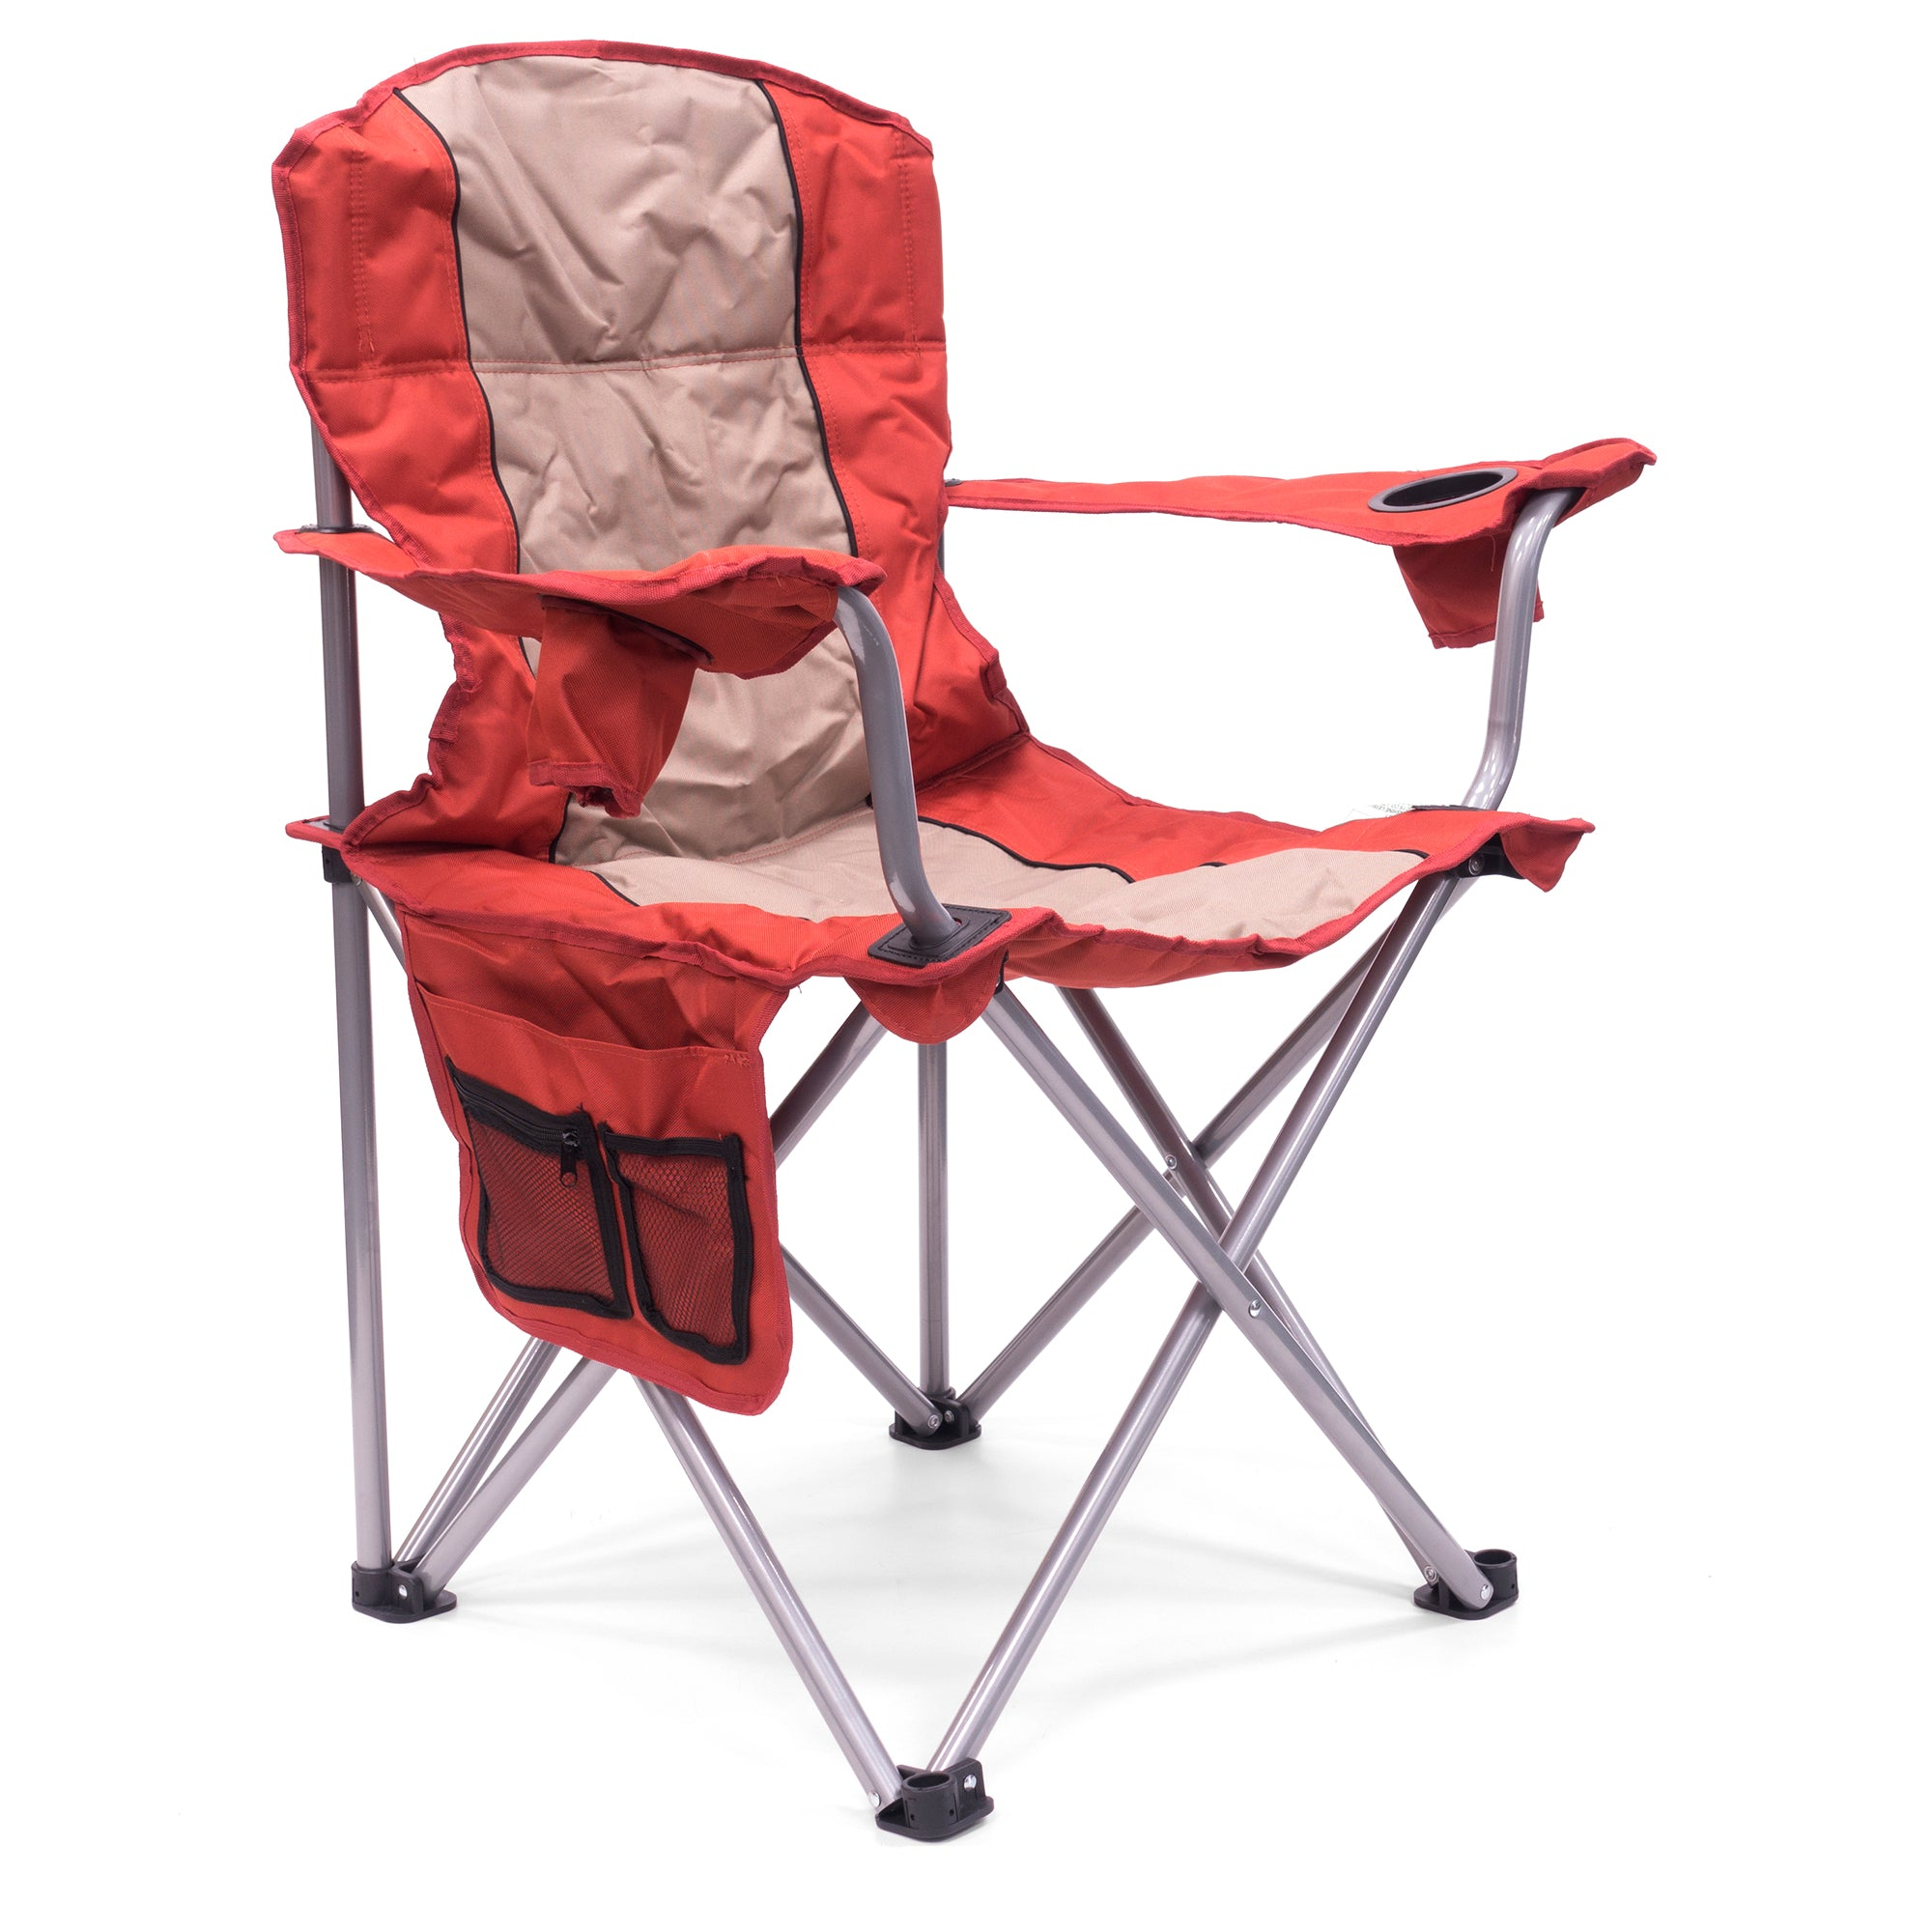 Big Boy Premium Padded Folding Camp Chair